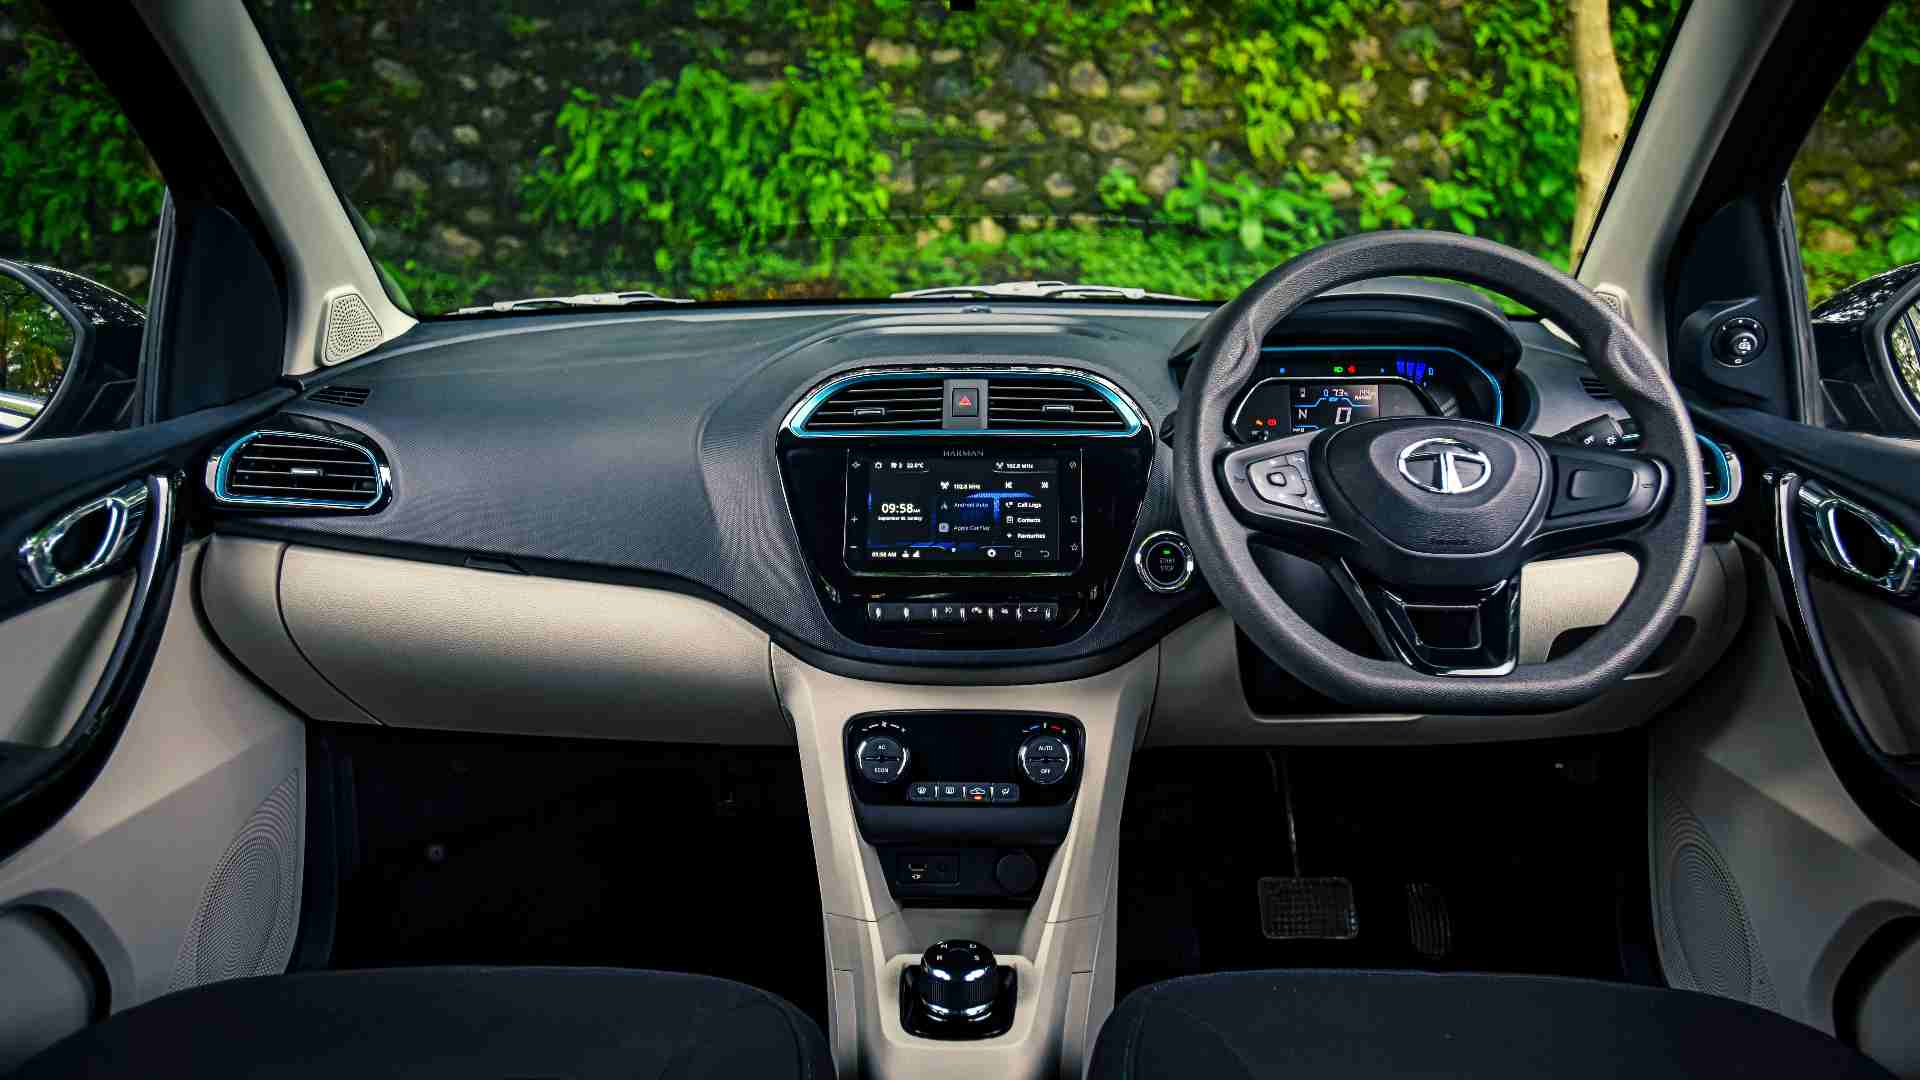 The iRA connected car suite brings a host of useful functions one can carry out remotely from the smartphone app. Image: Anis Shaikh/Overdrive